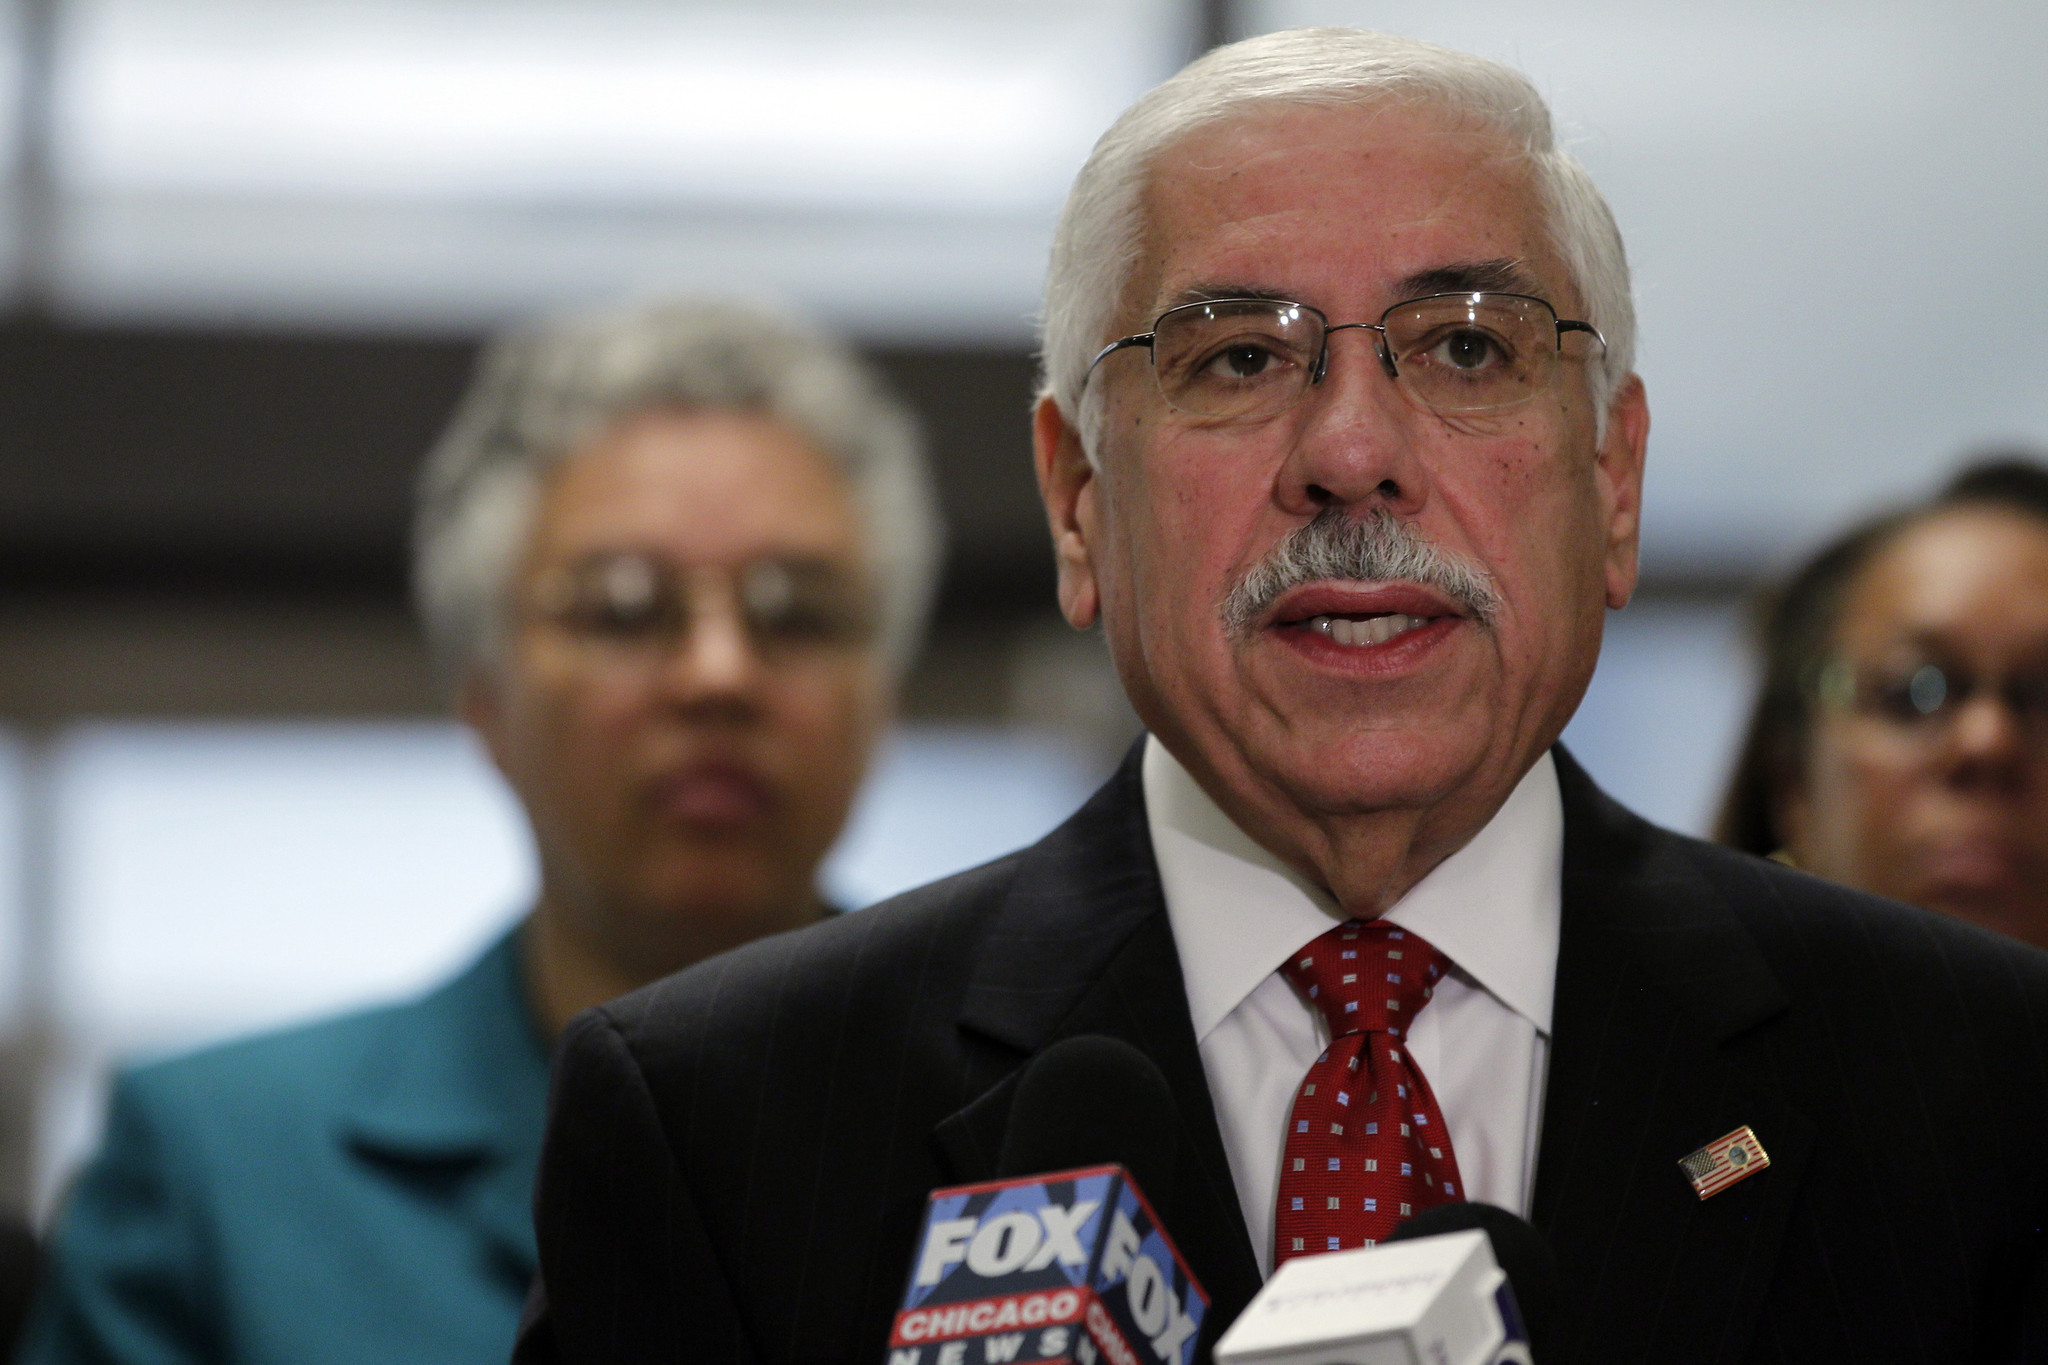 Judge says Berrios doesn't have to pay $10,000 ethics fine